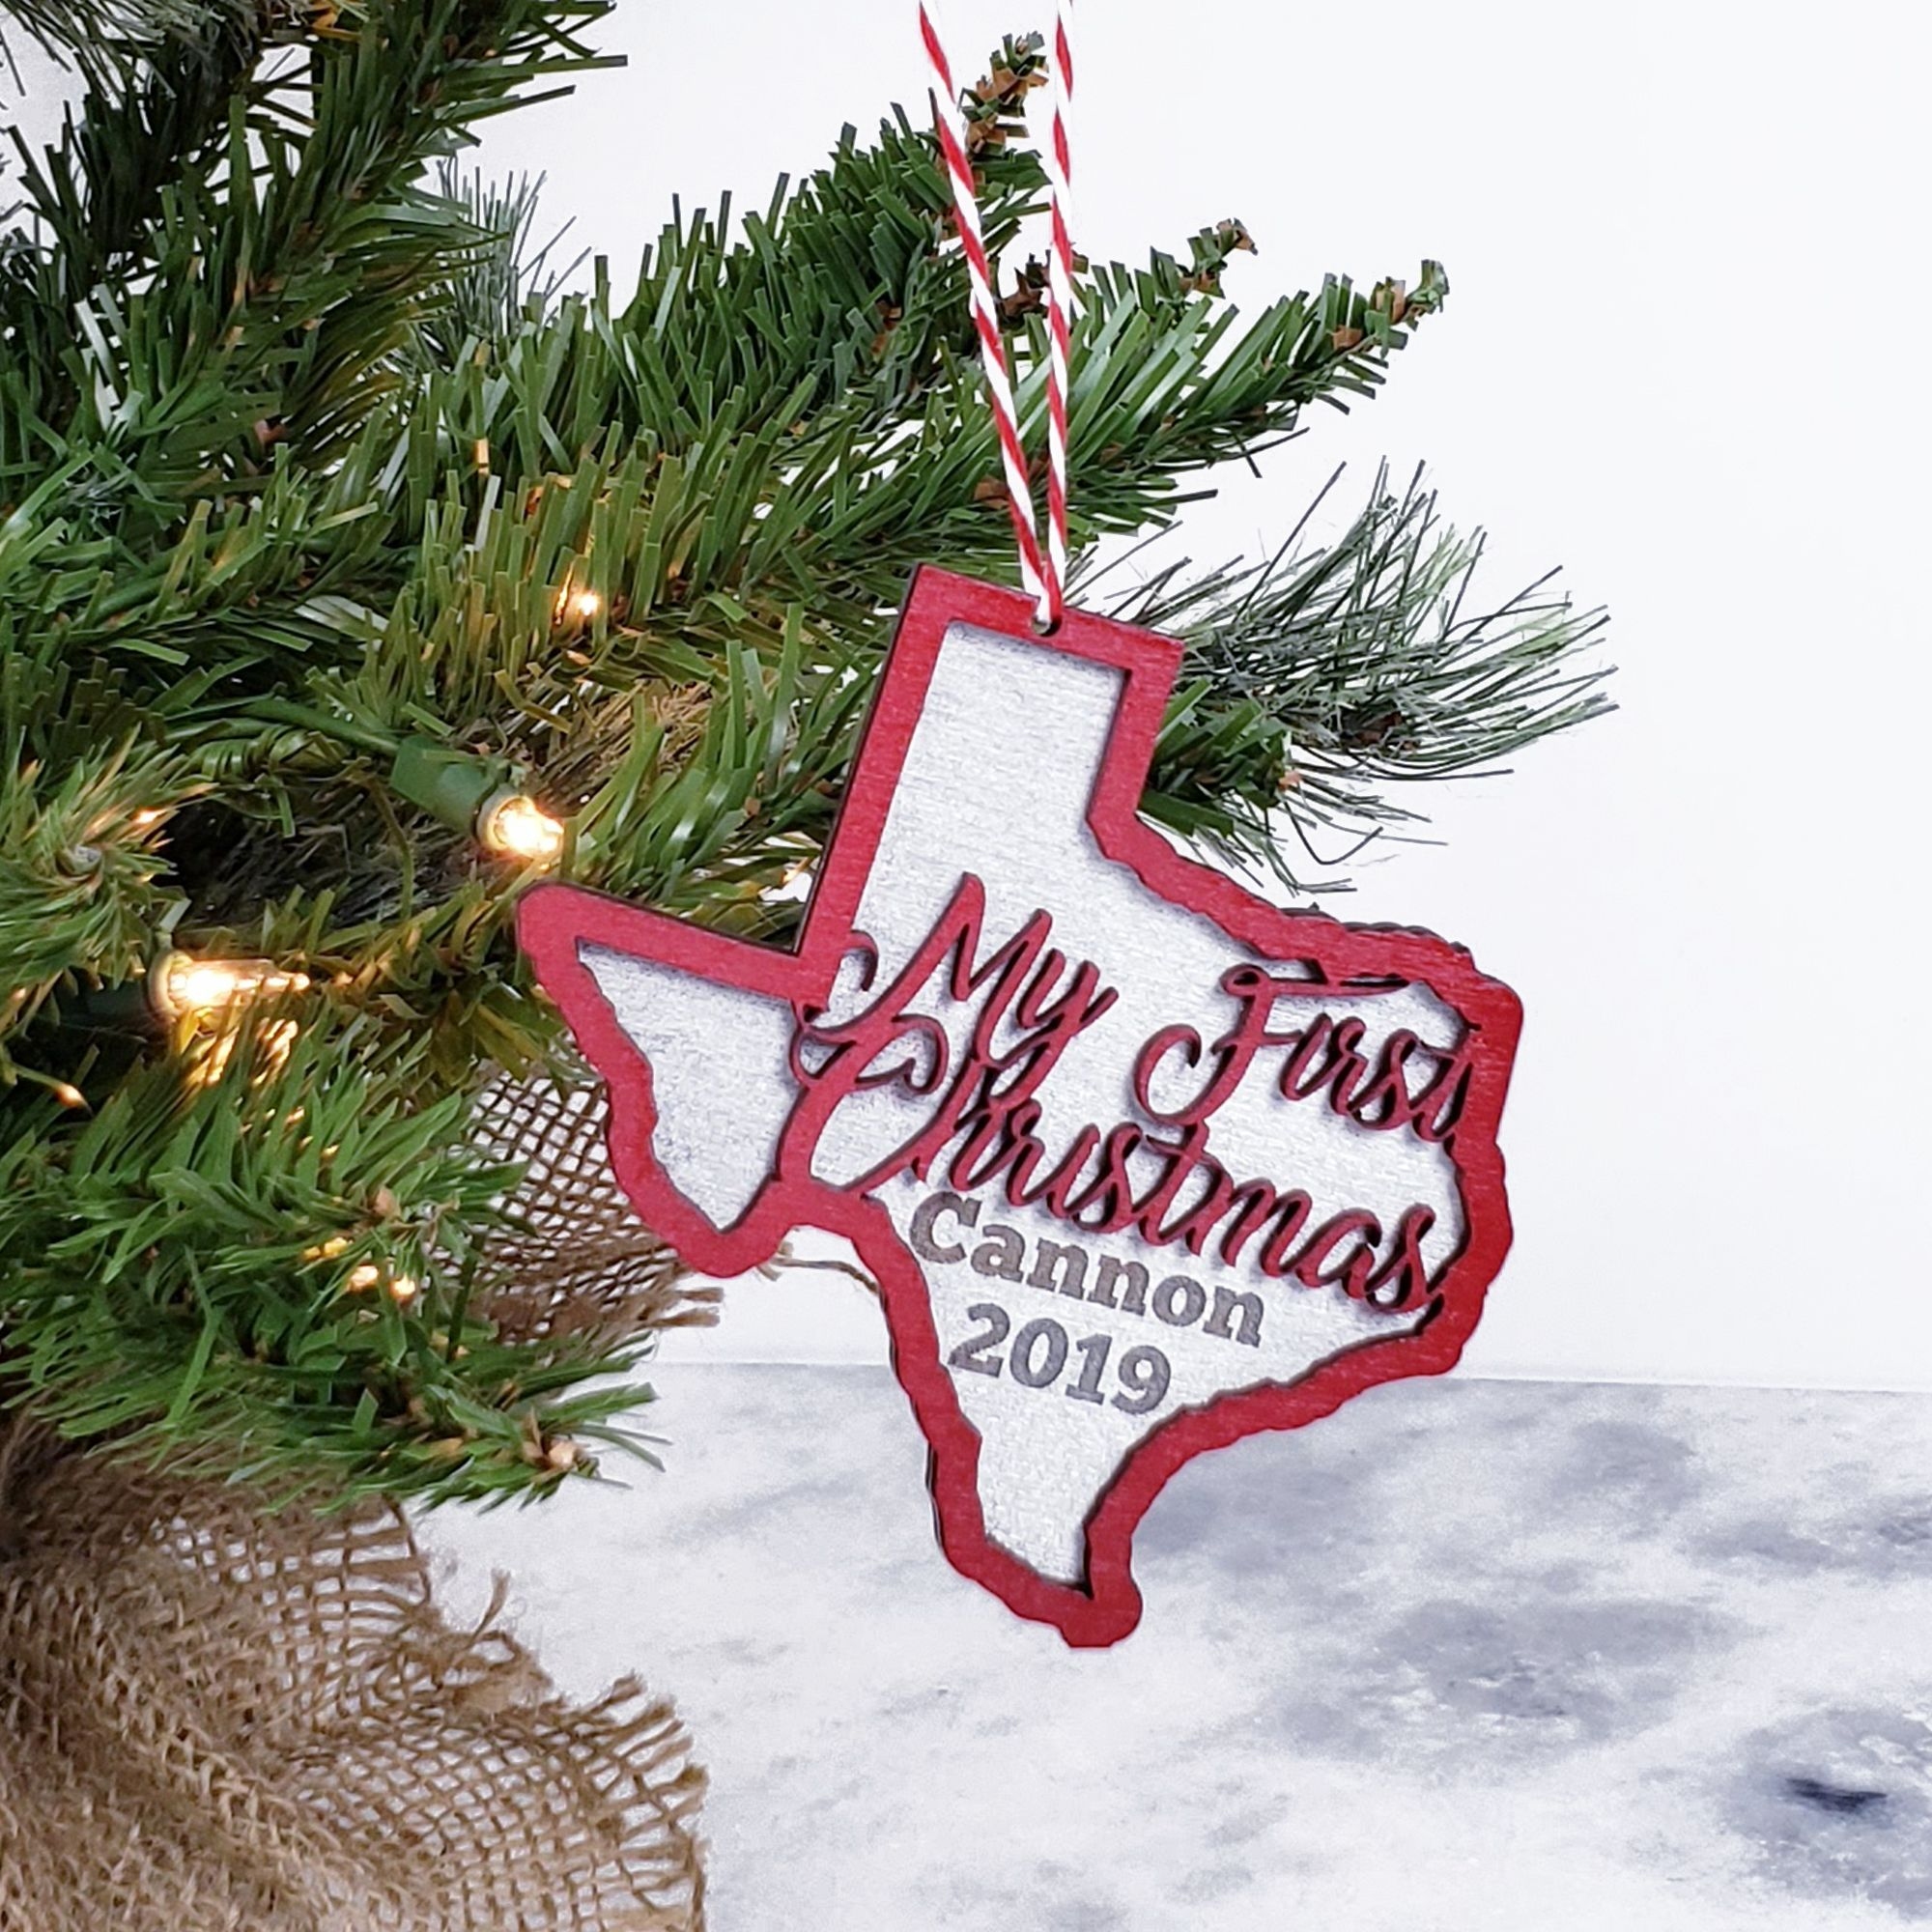 State Of Texas Baby S First Christmas Ornament 2019 Etsy Christmas Ornaments Baby First Christmas Ornament Christmas Gift Decorations